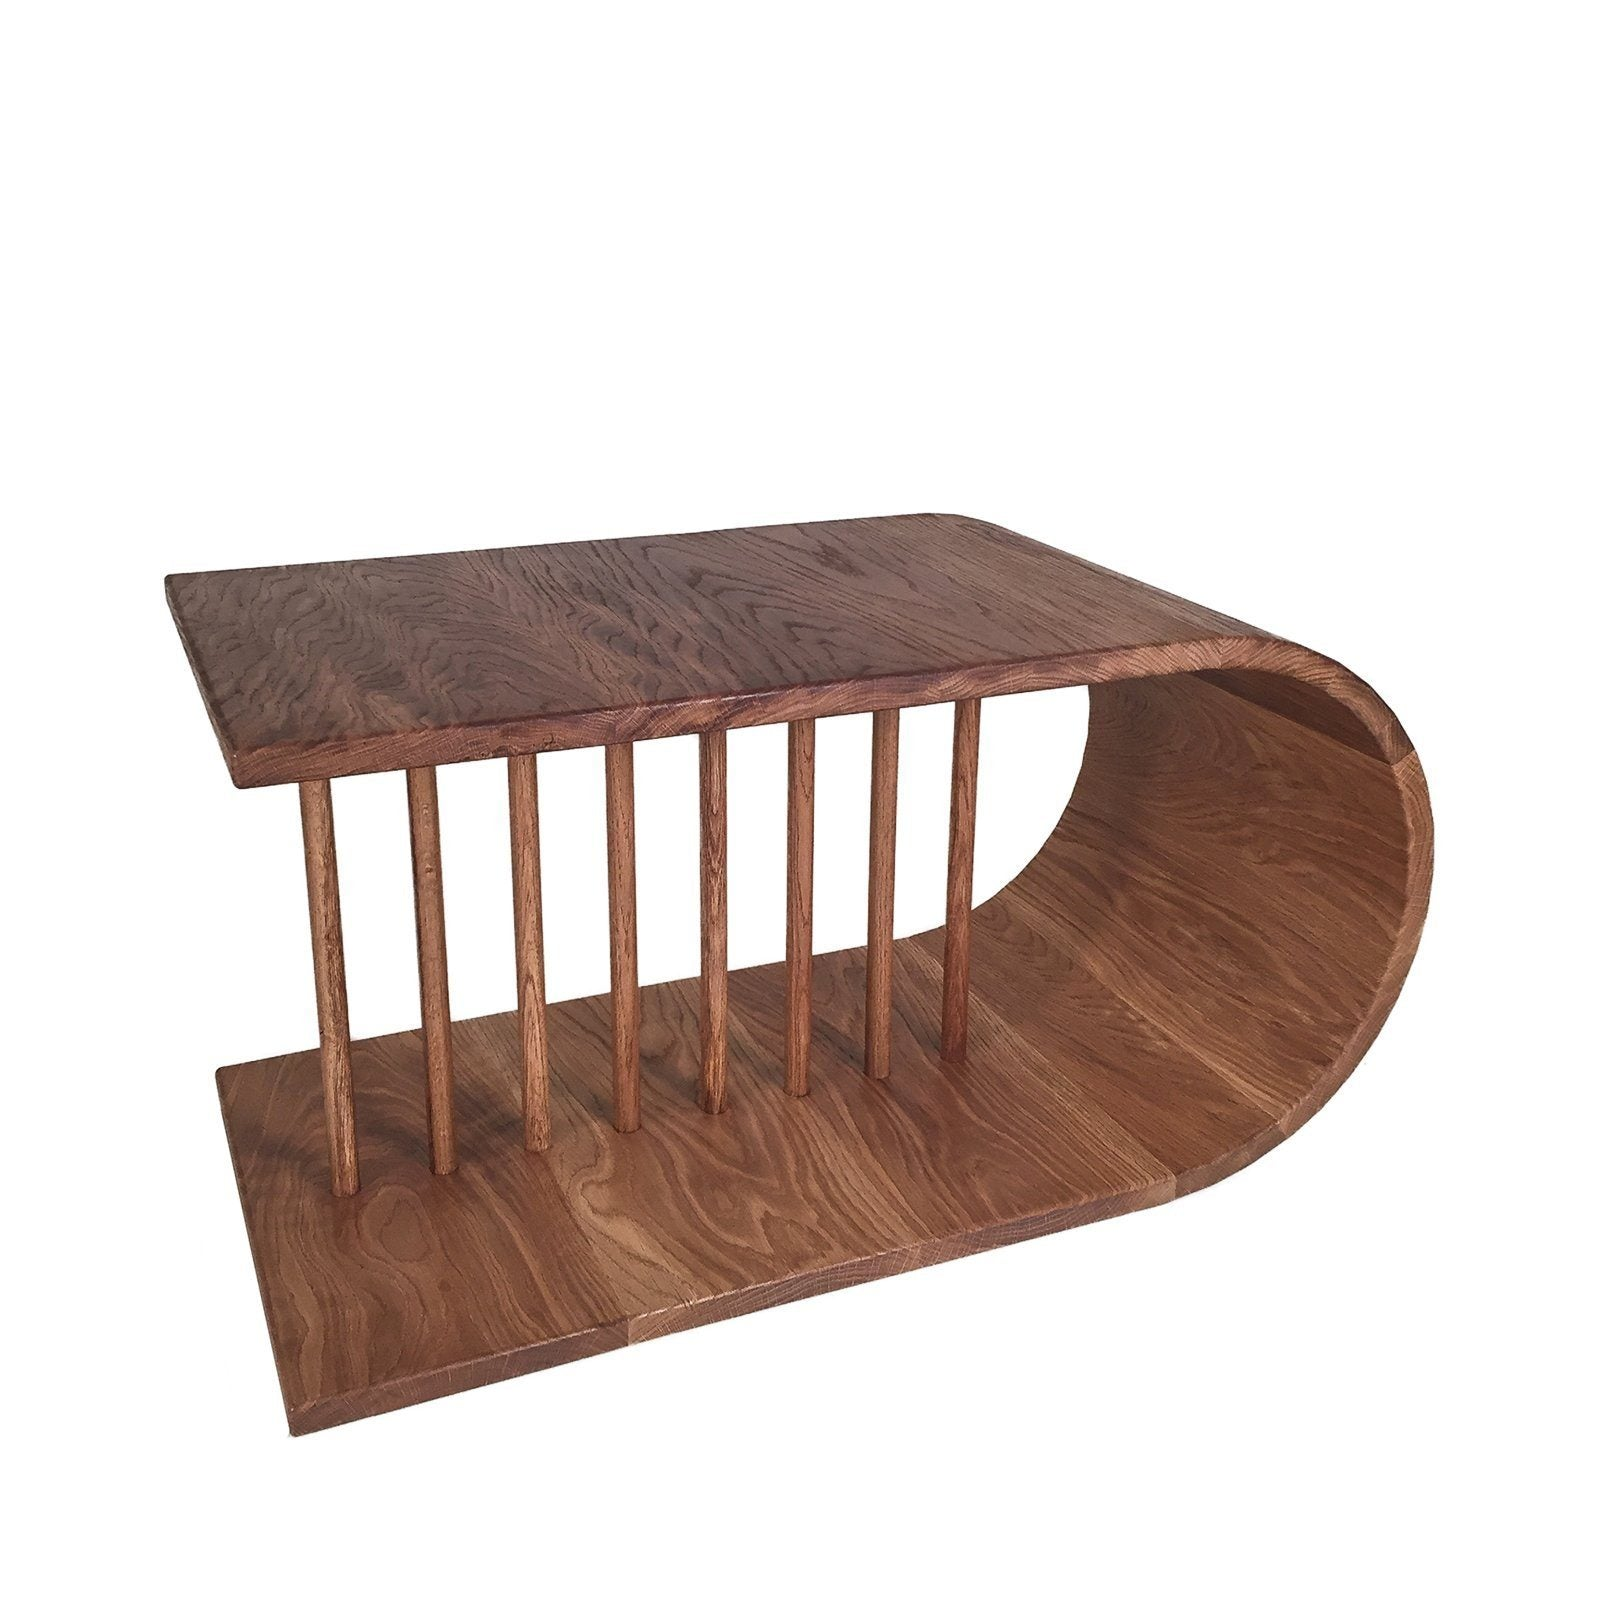 Marvelous ... Tables U003e Coffee Table Rectangular   The Euclid Coffee Table By Peg  Woodworking ... Good Ideas